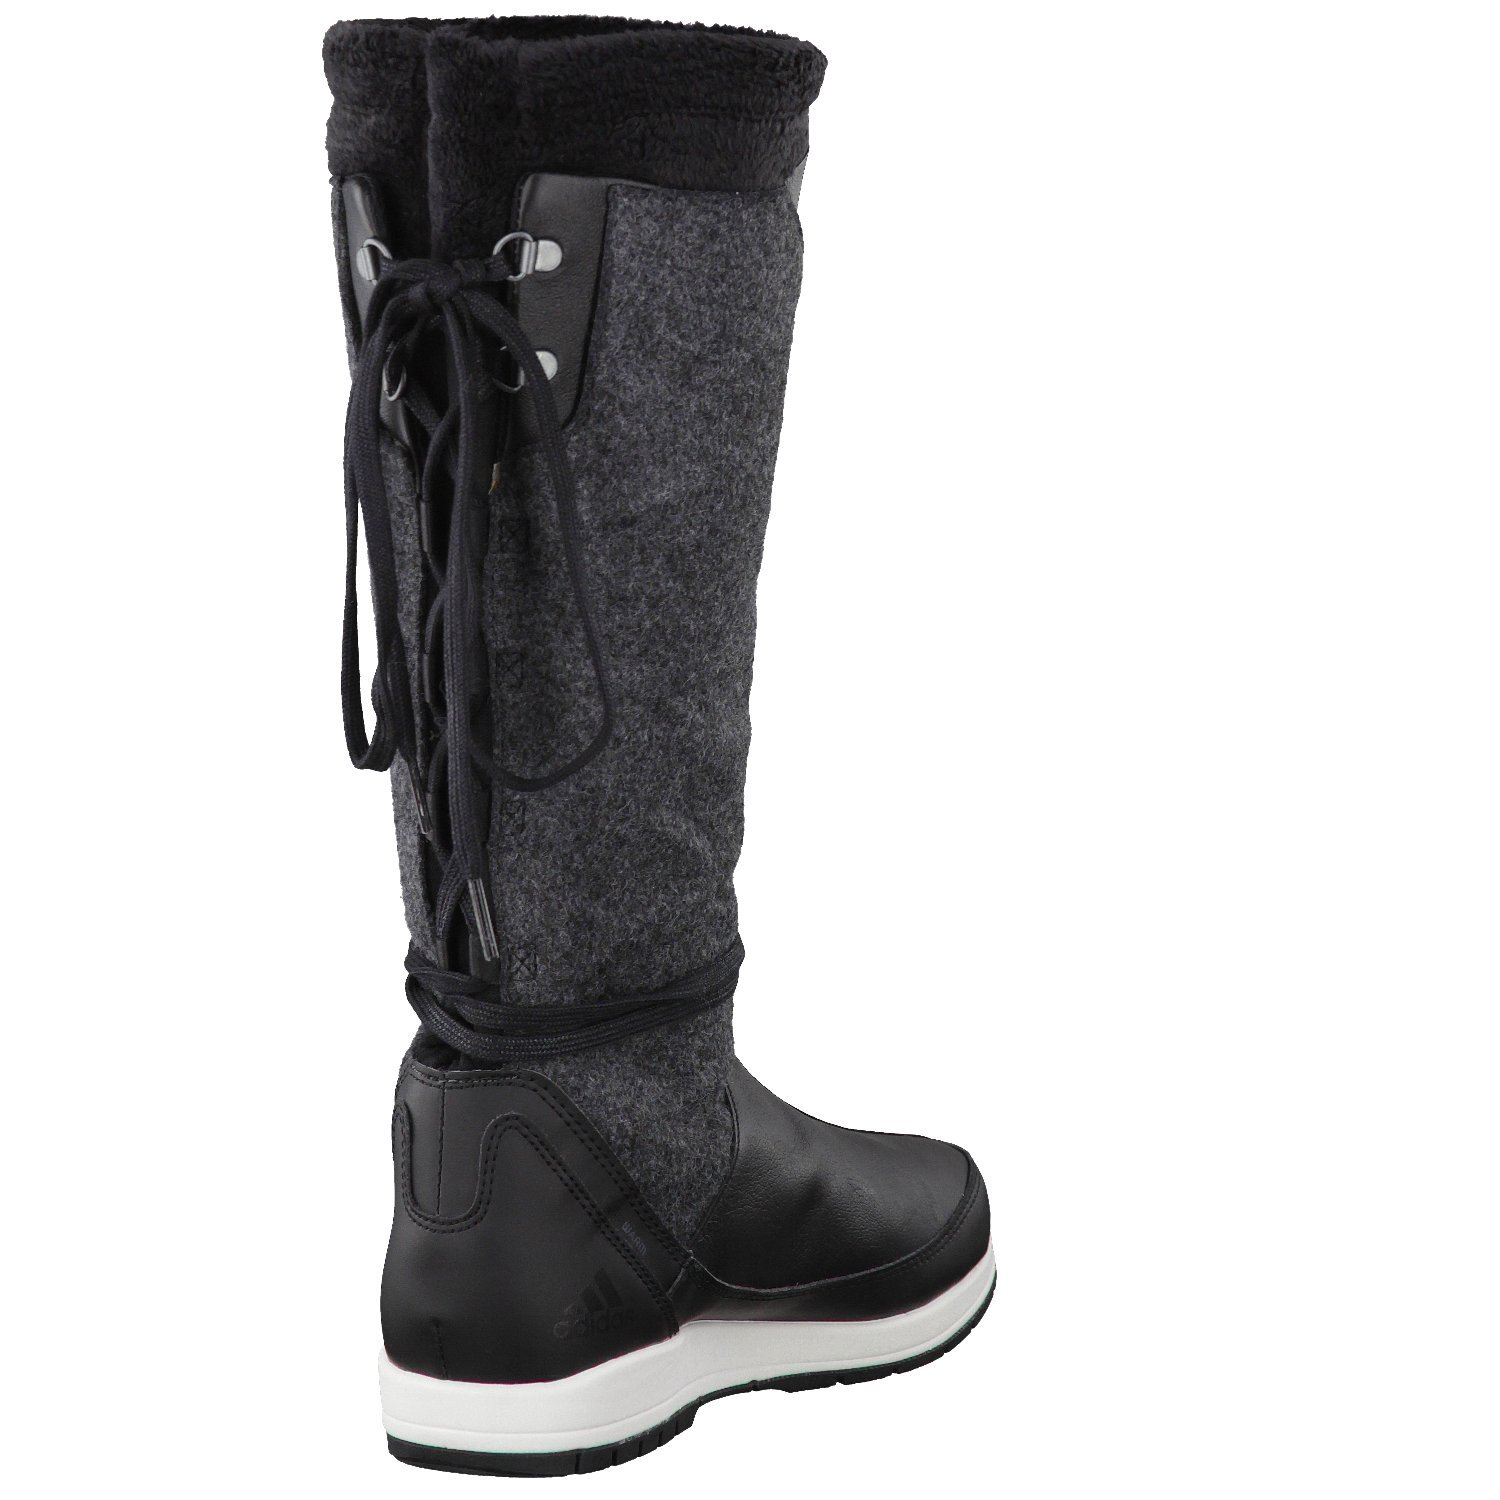 Adidas Damen Stiefel Winter Kawaya G62173 39 1/3 Schwarz: Amazon.de ...